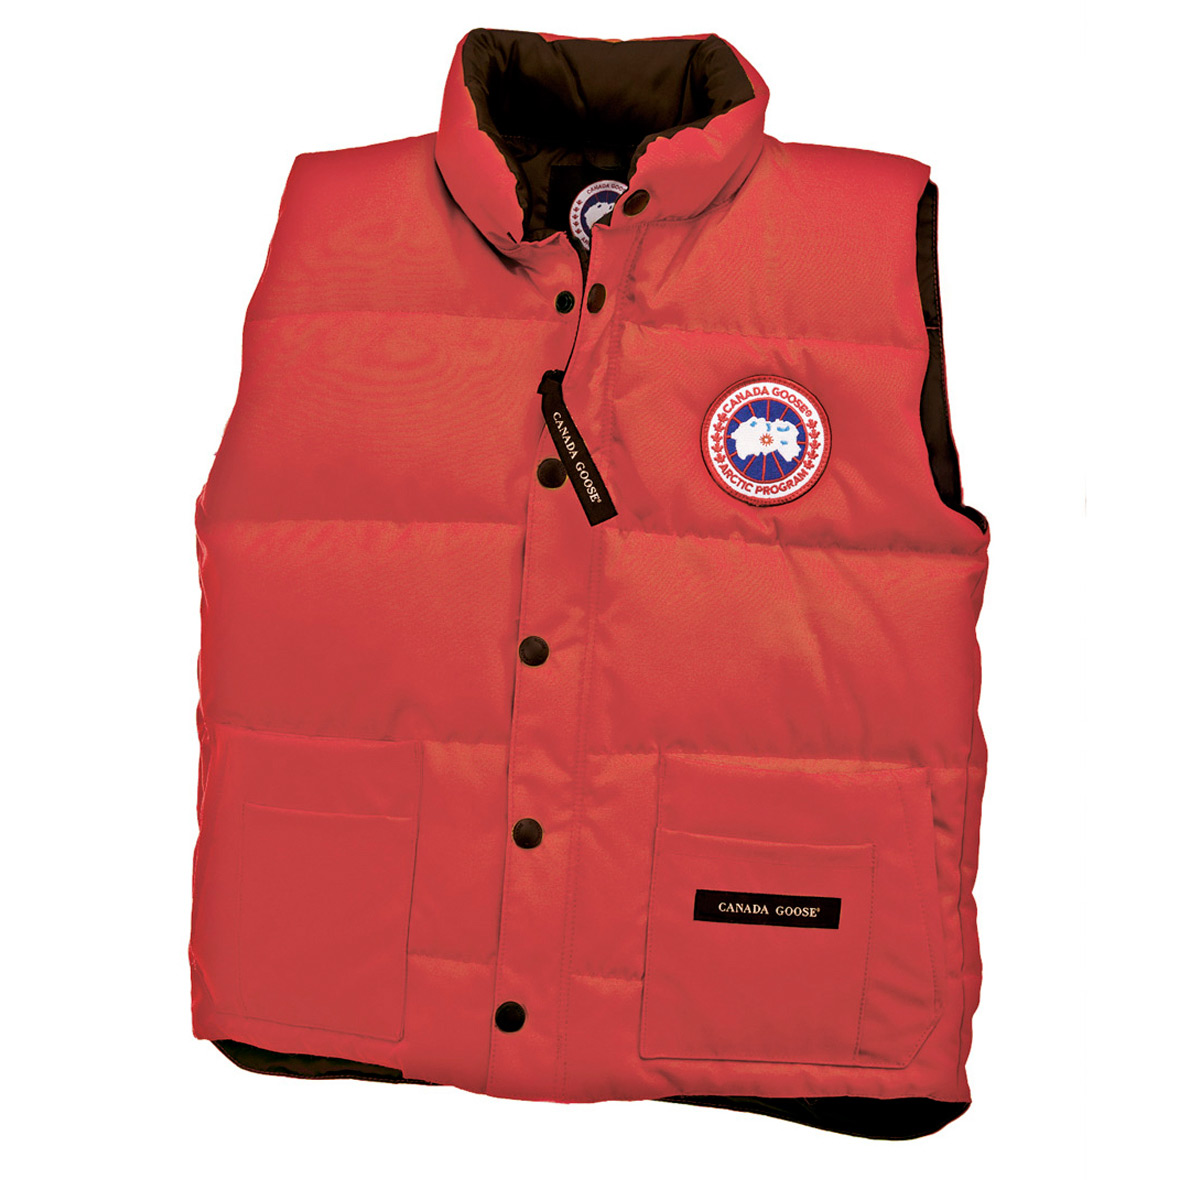 Canada Goose Freestyle Vest RED For Men